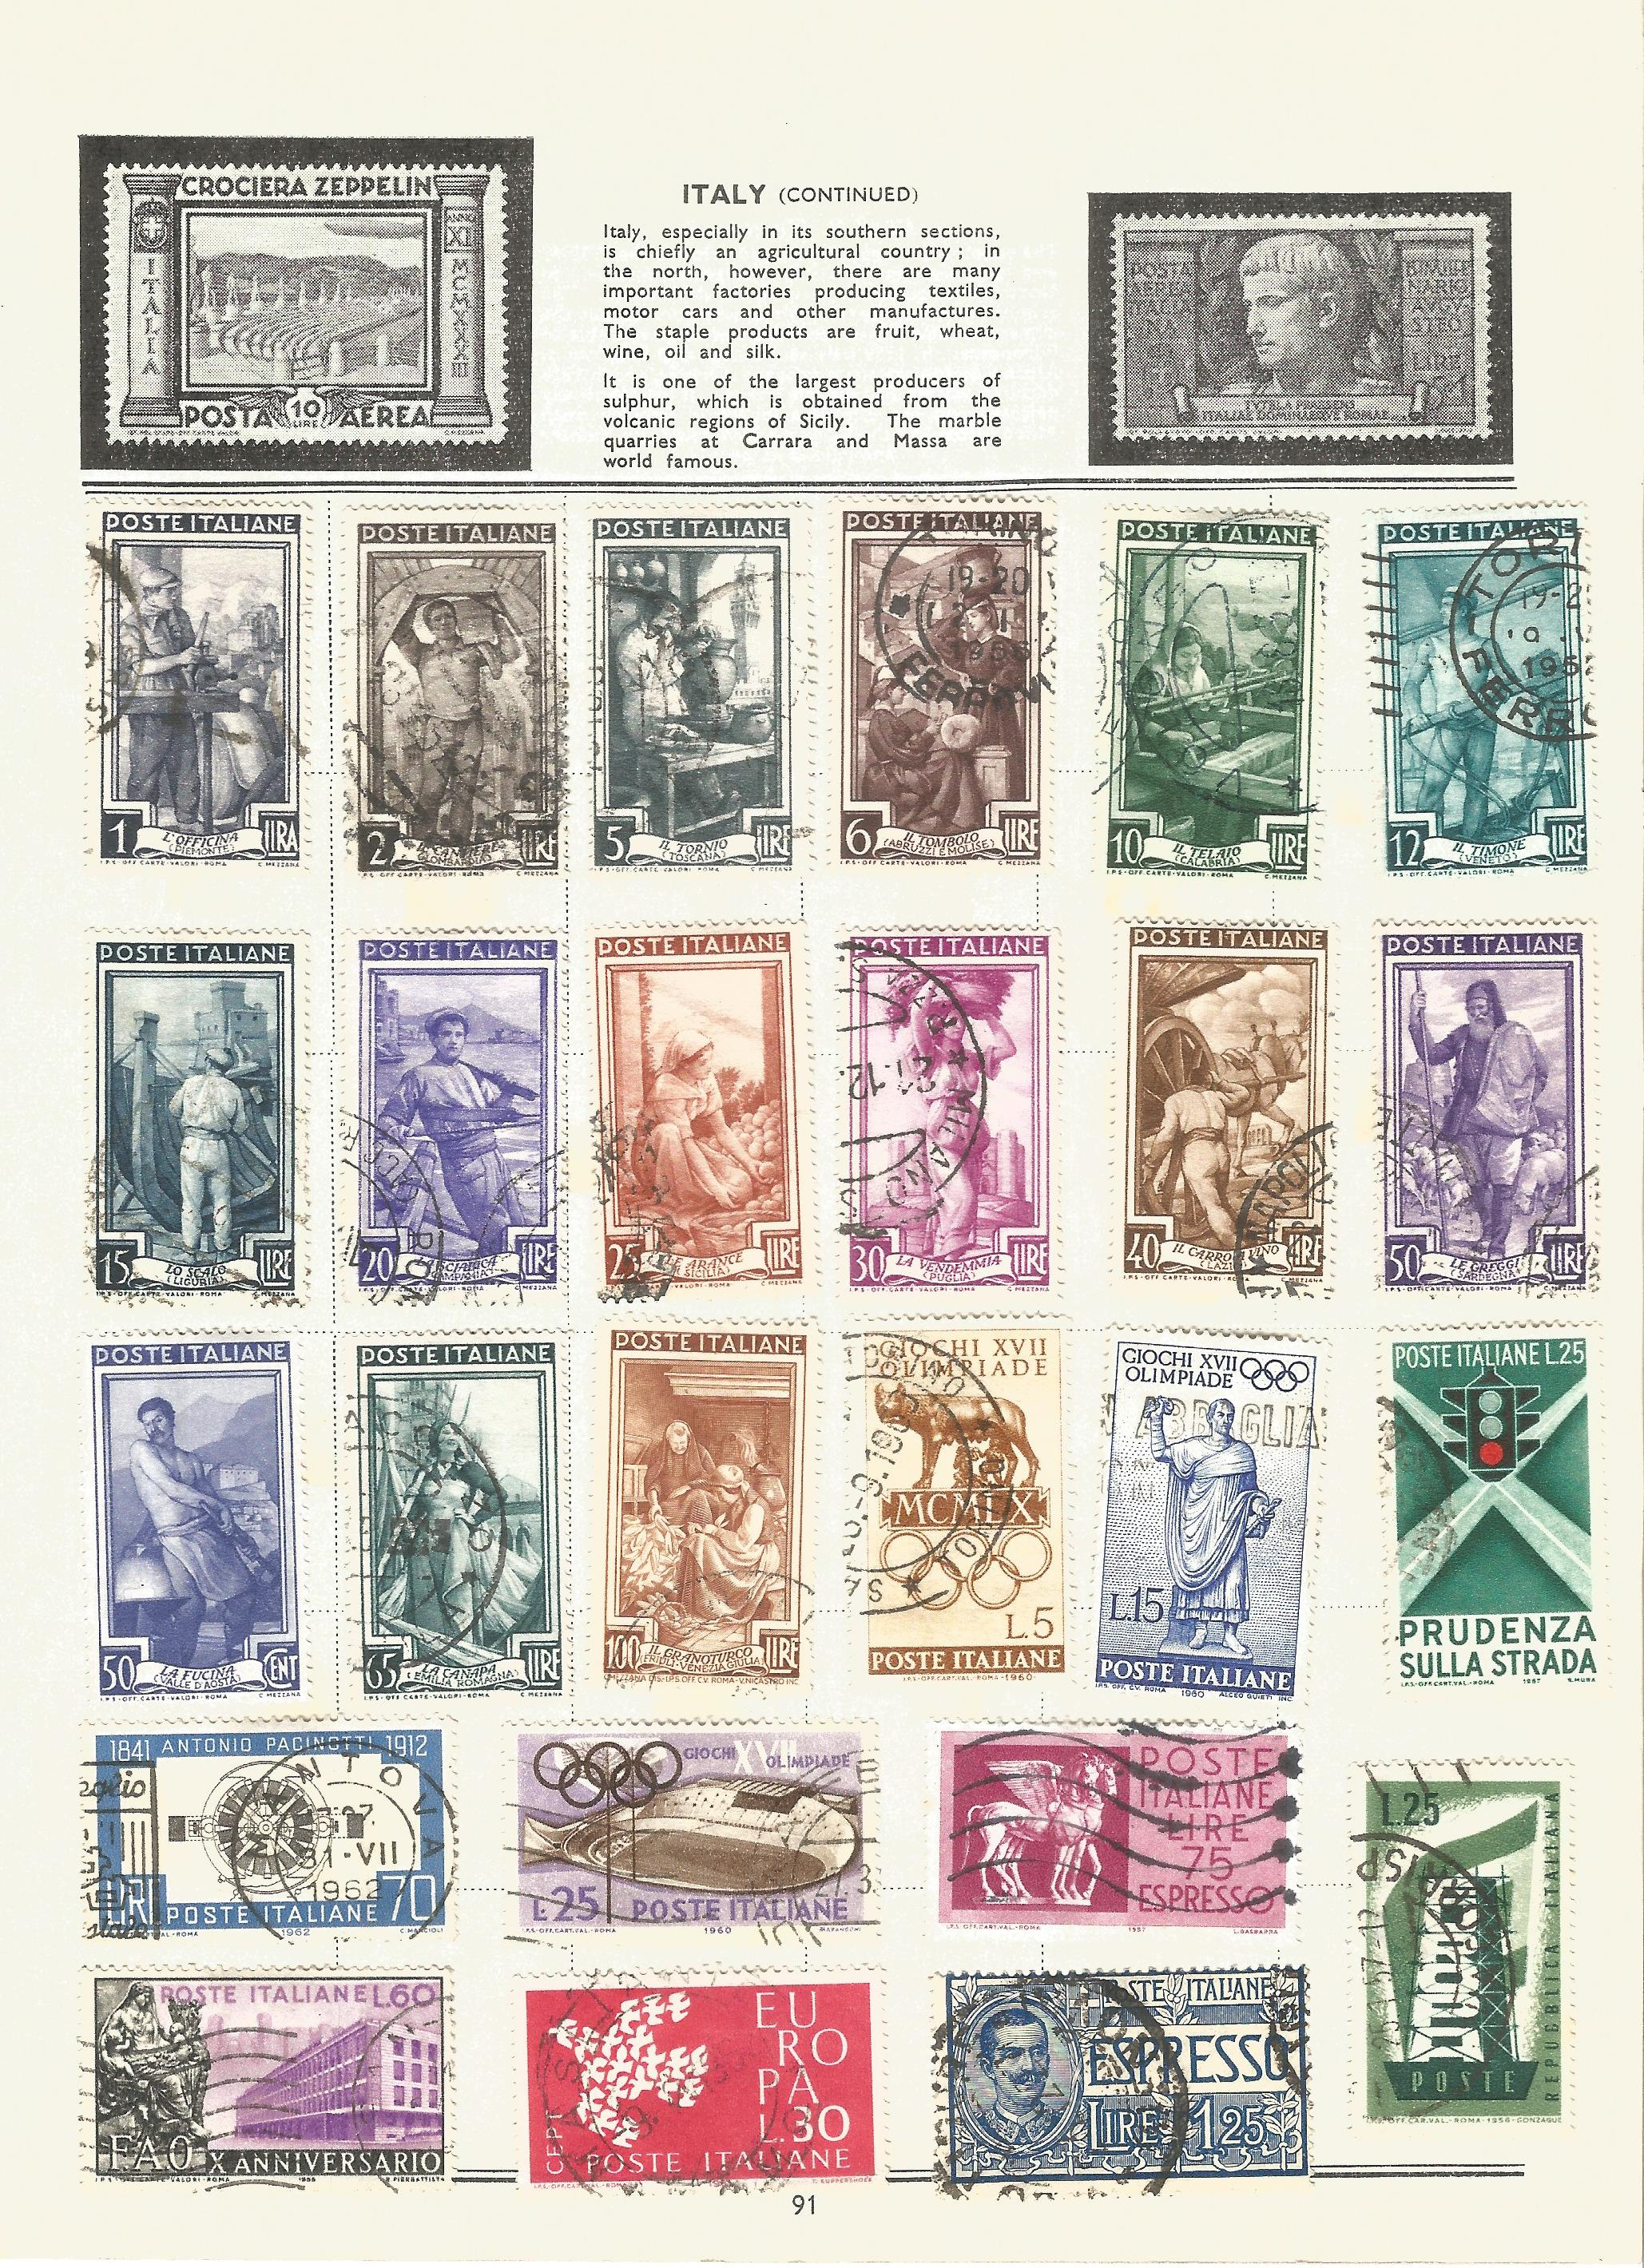 Foreign stamp collection on 16 loose album pages. Includes Italy, Netherlands, Norway, Portugal